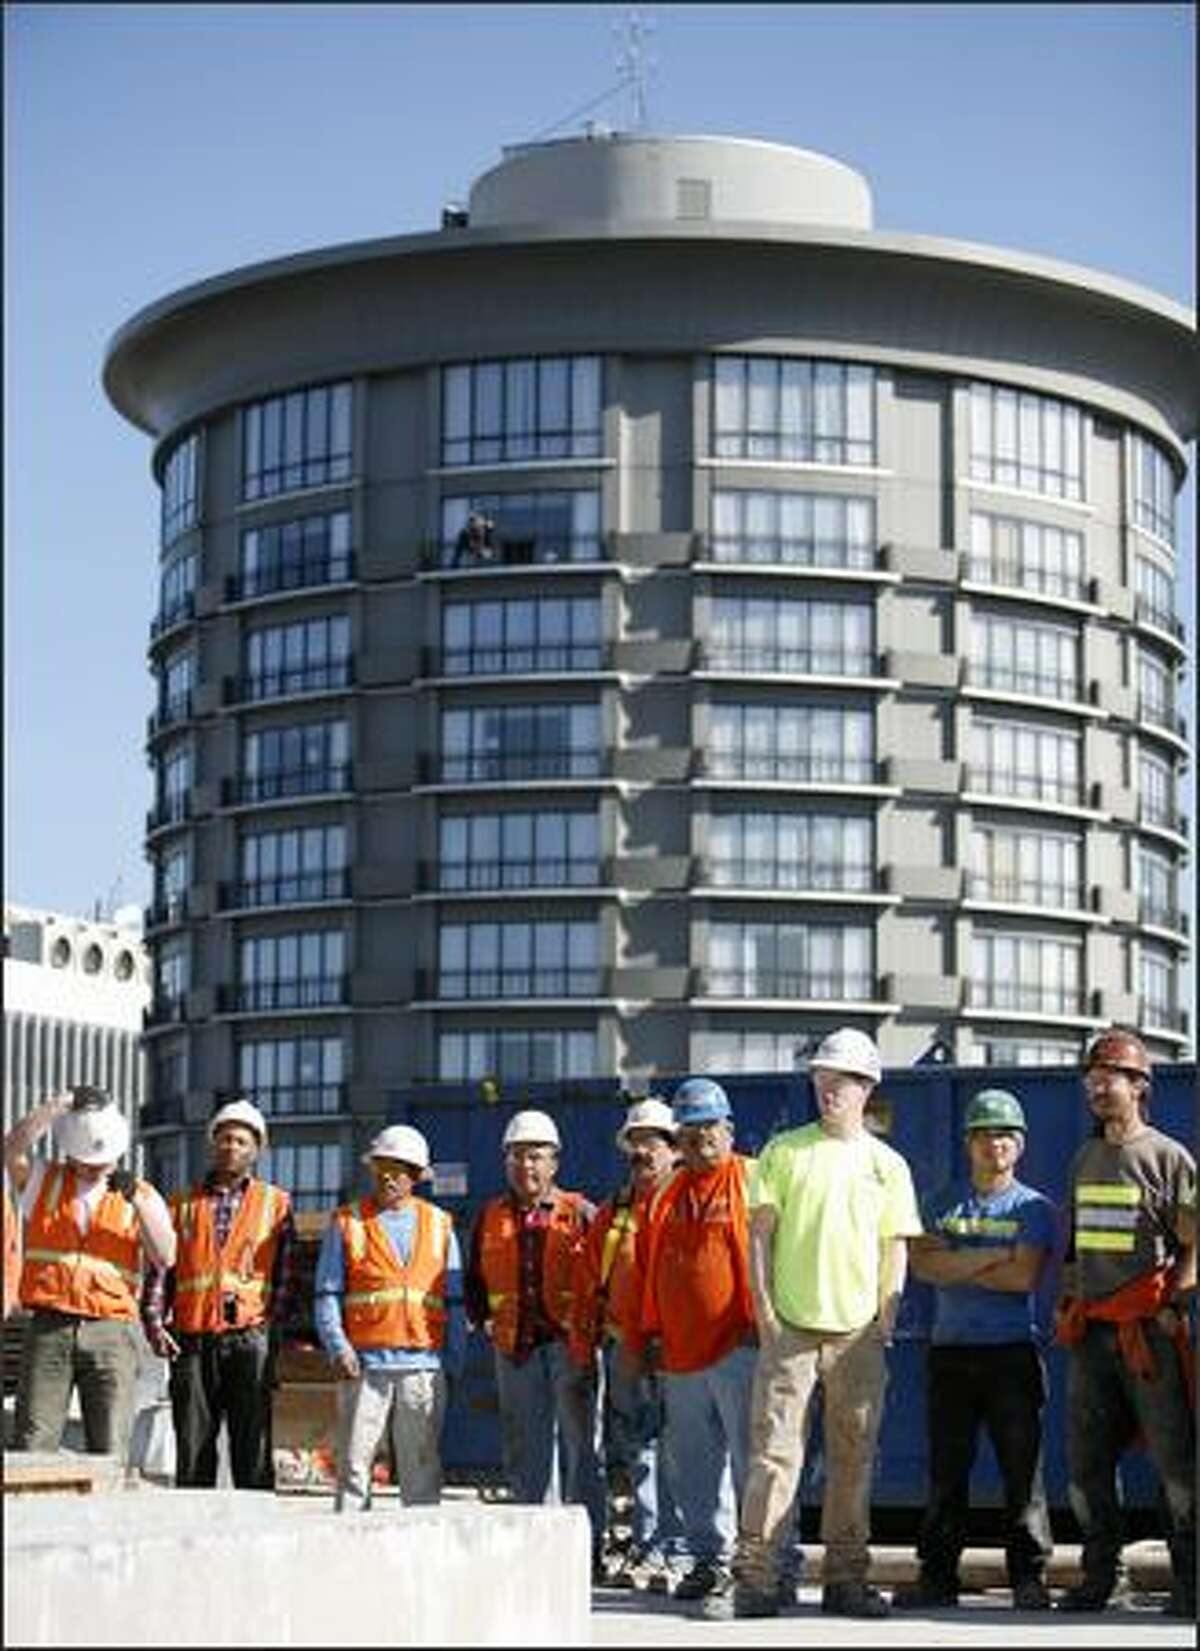 Construction workers participate in a ceremony on the roof of the Escala building.